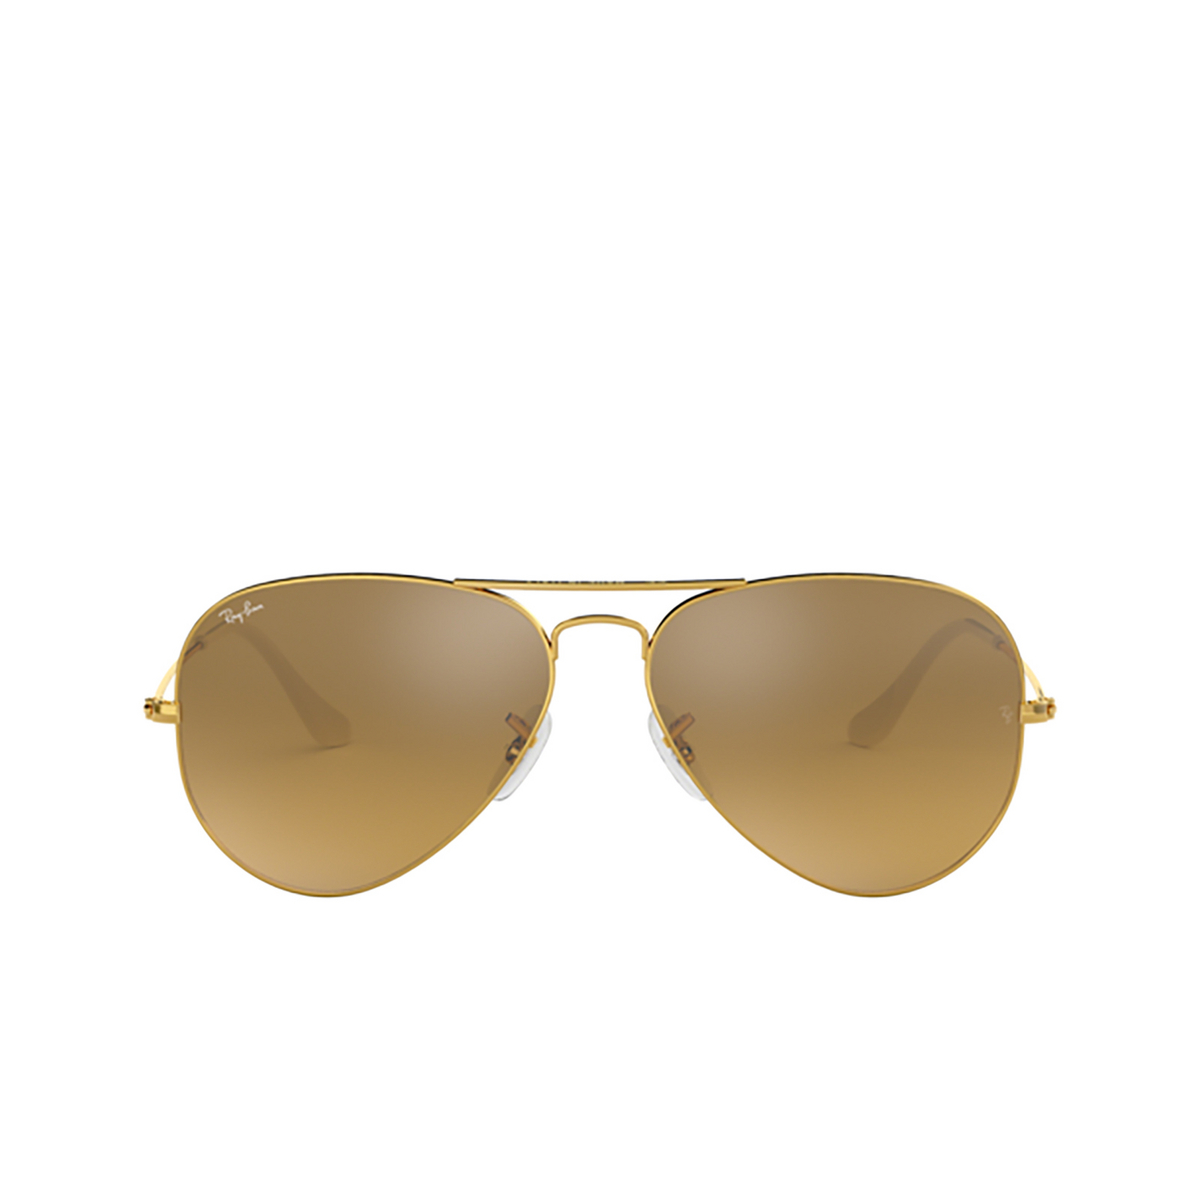 Ray-Ban® Aviator Sunglasses: Aviator Large Metal RB3025 color Arista 001/3K - front view.